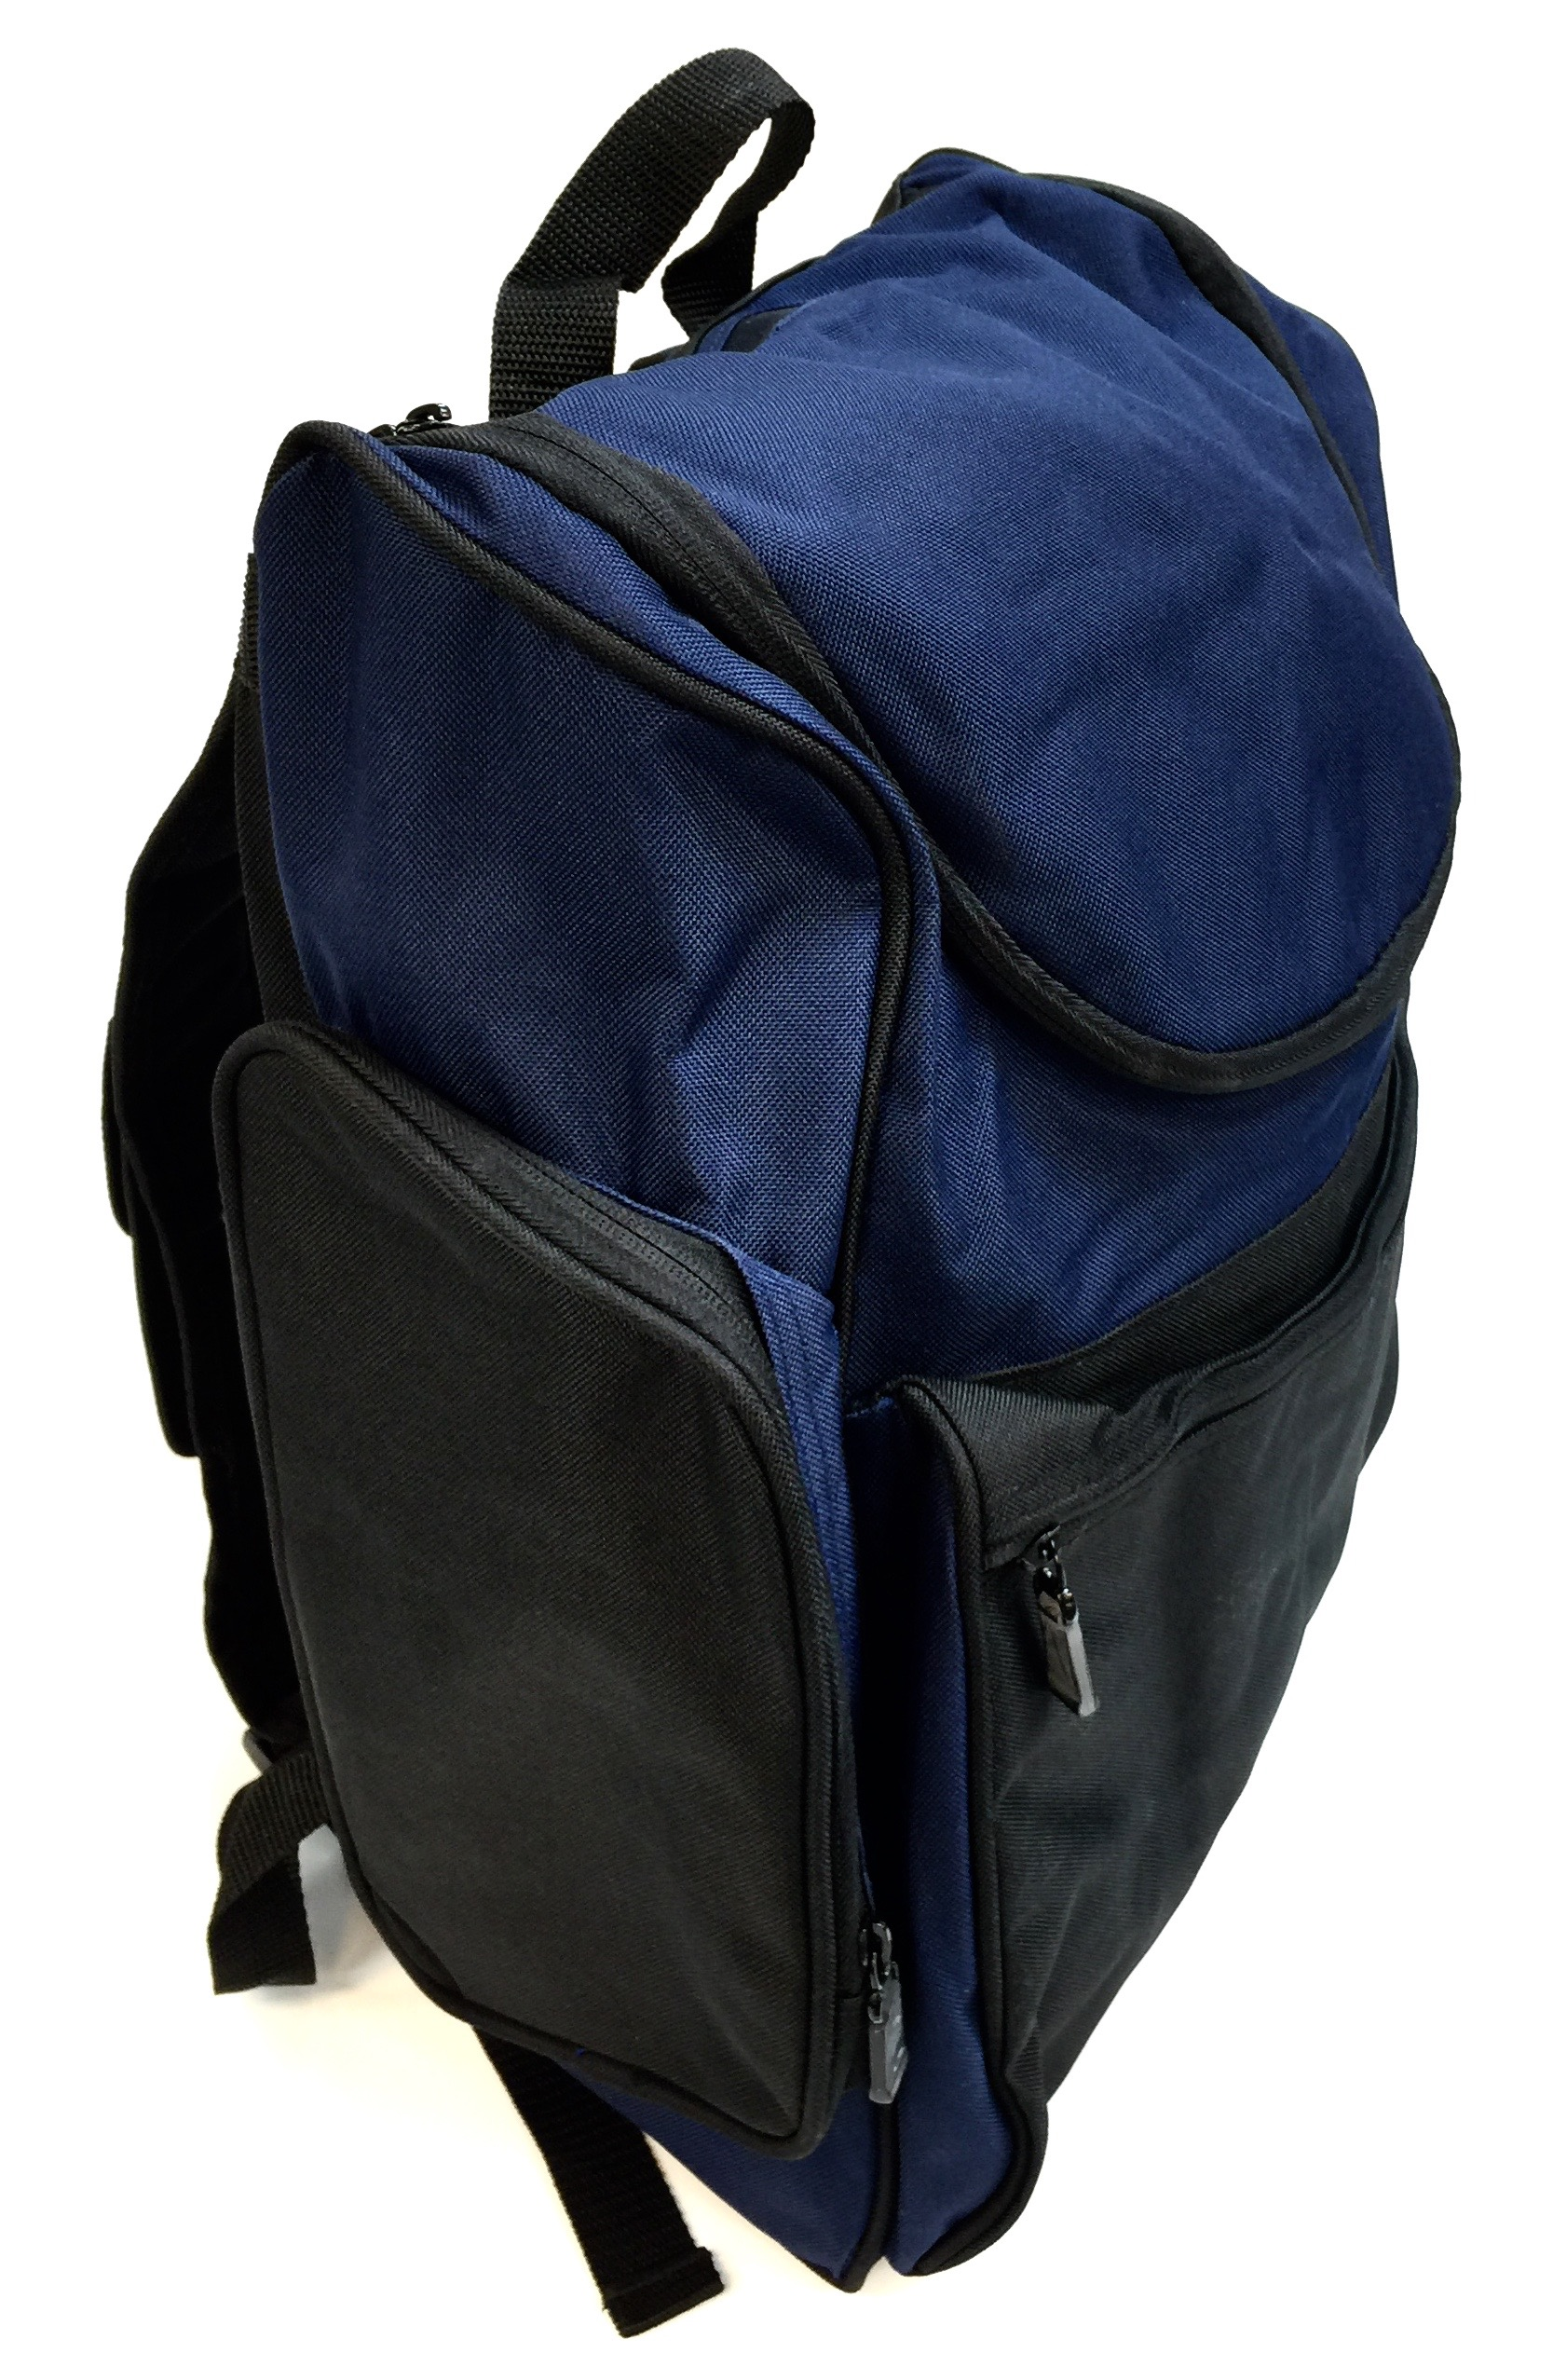 Backpack Black/Navy